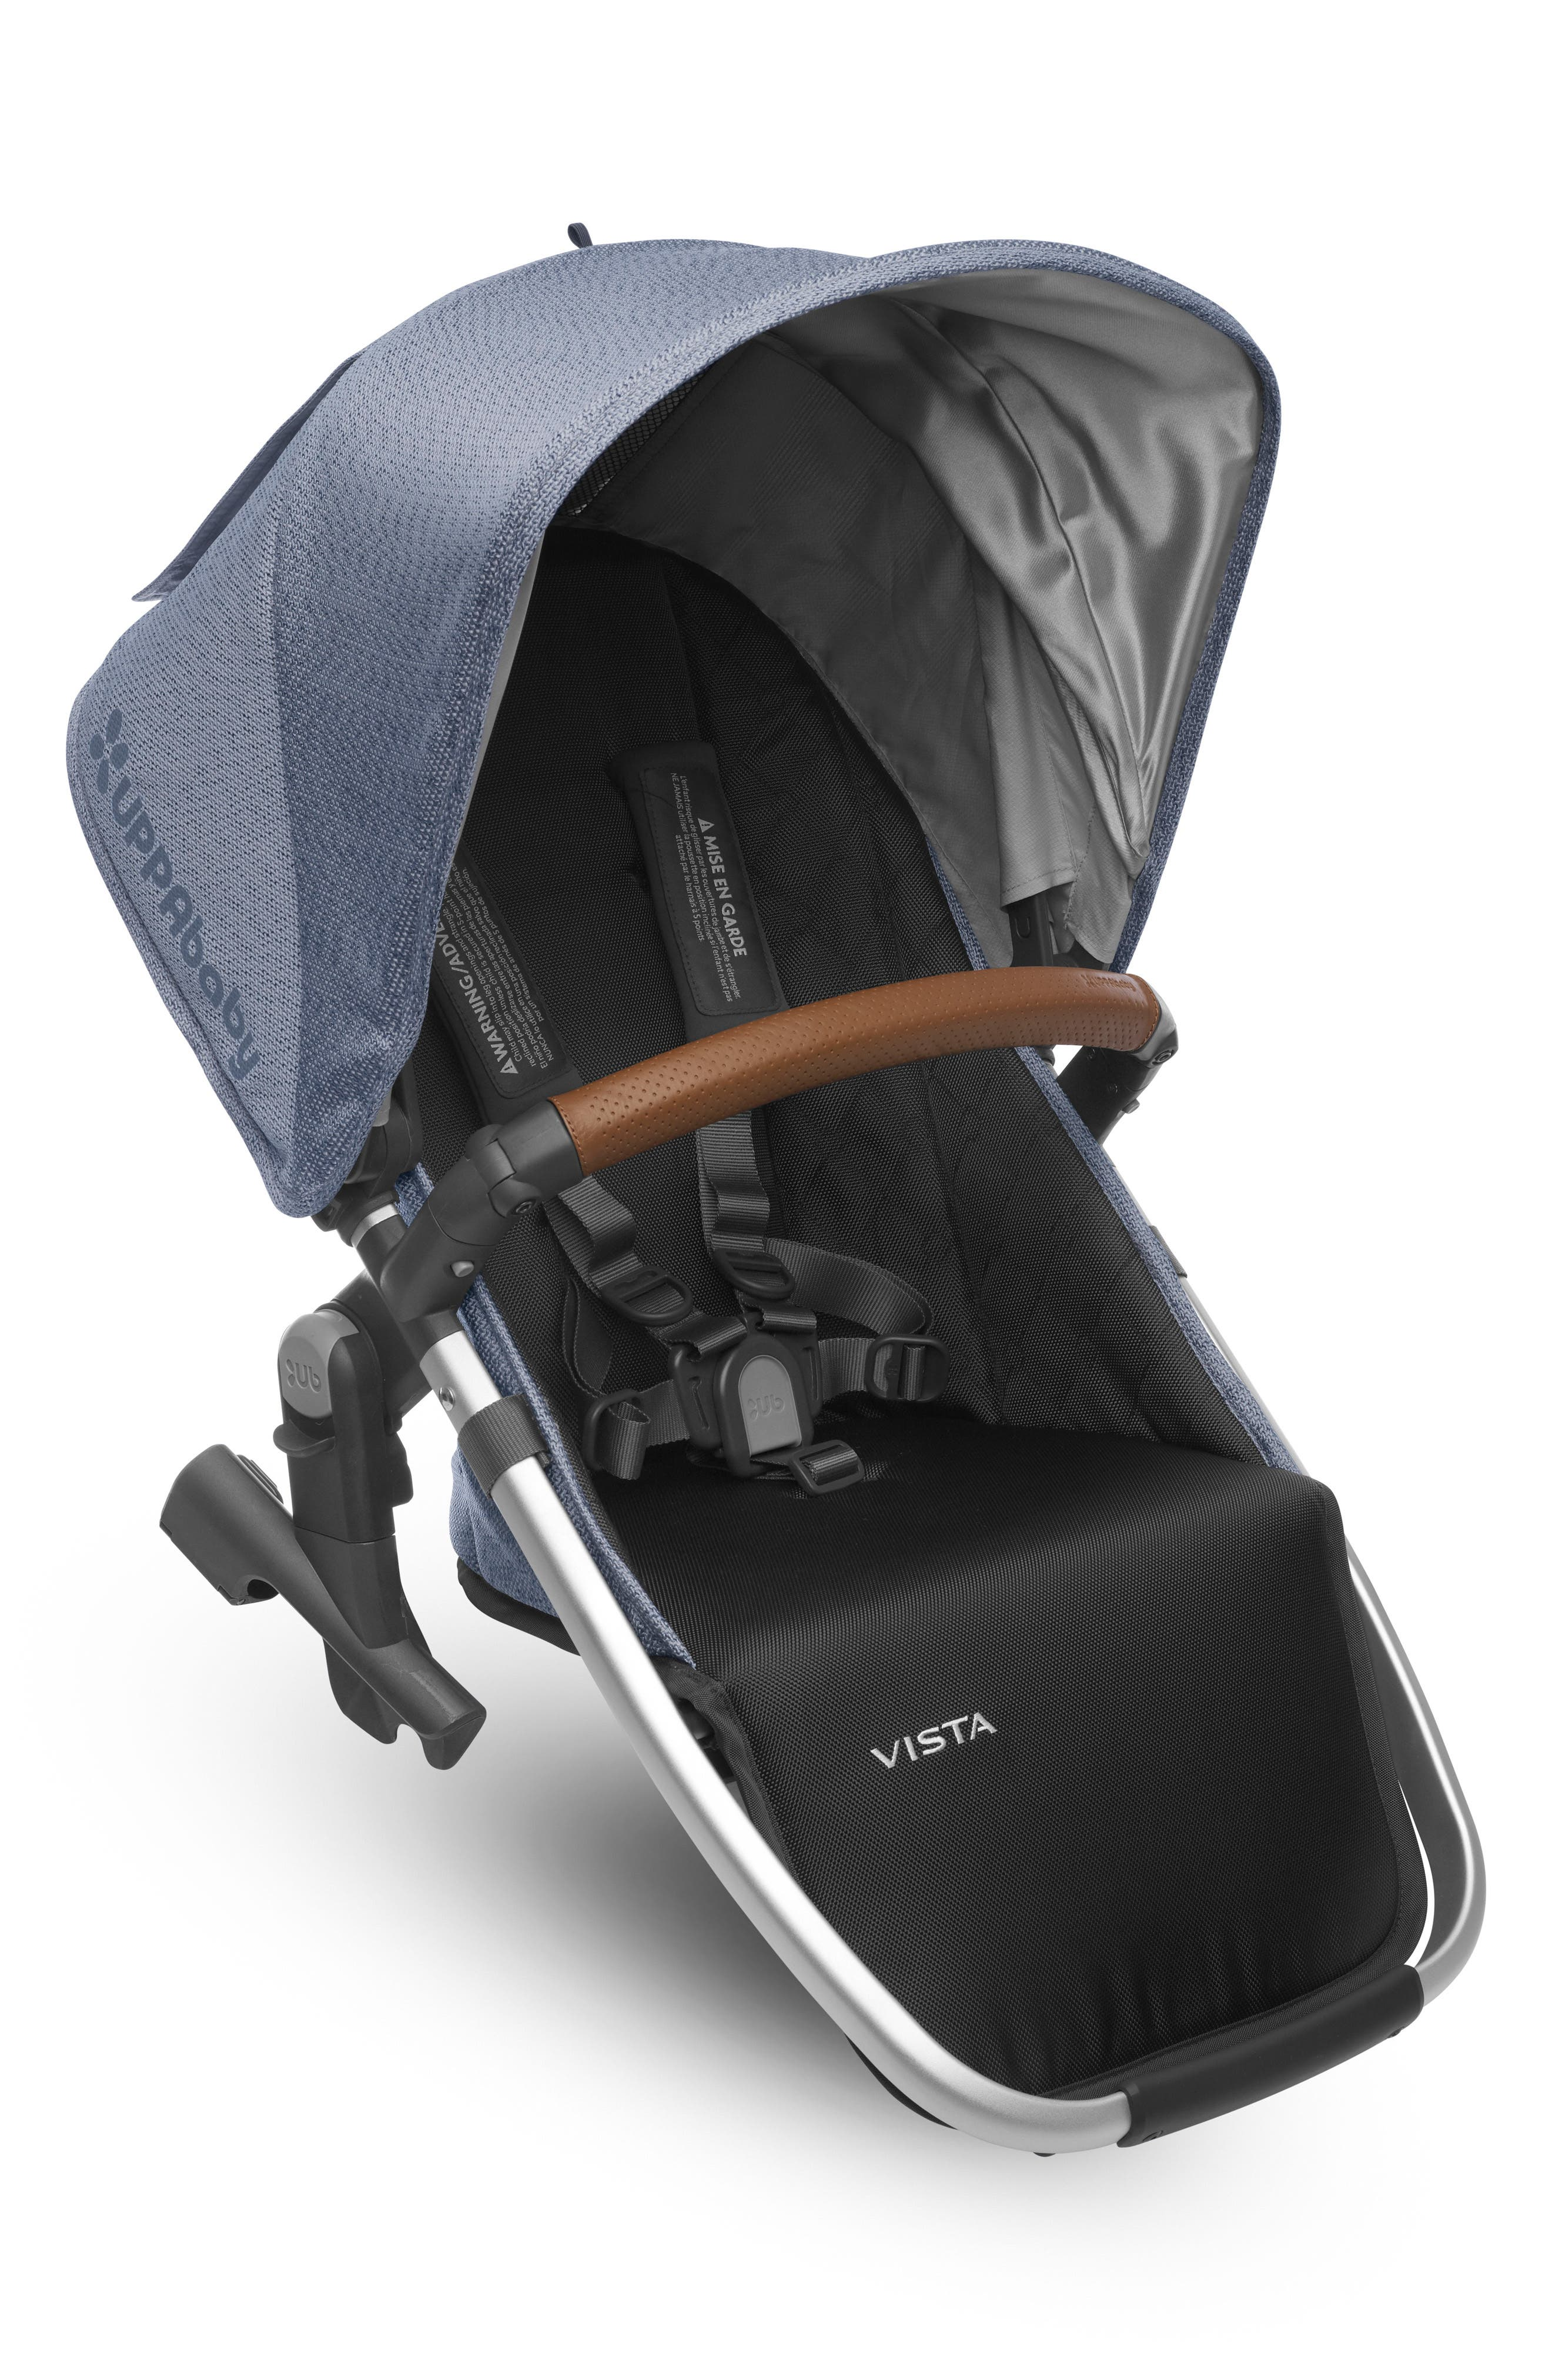 2017 Limited Edition Henry Rumble Seat for VISTA Stroller,                             Main thumbnail 1, color,                             Blue Marl